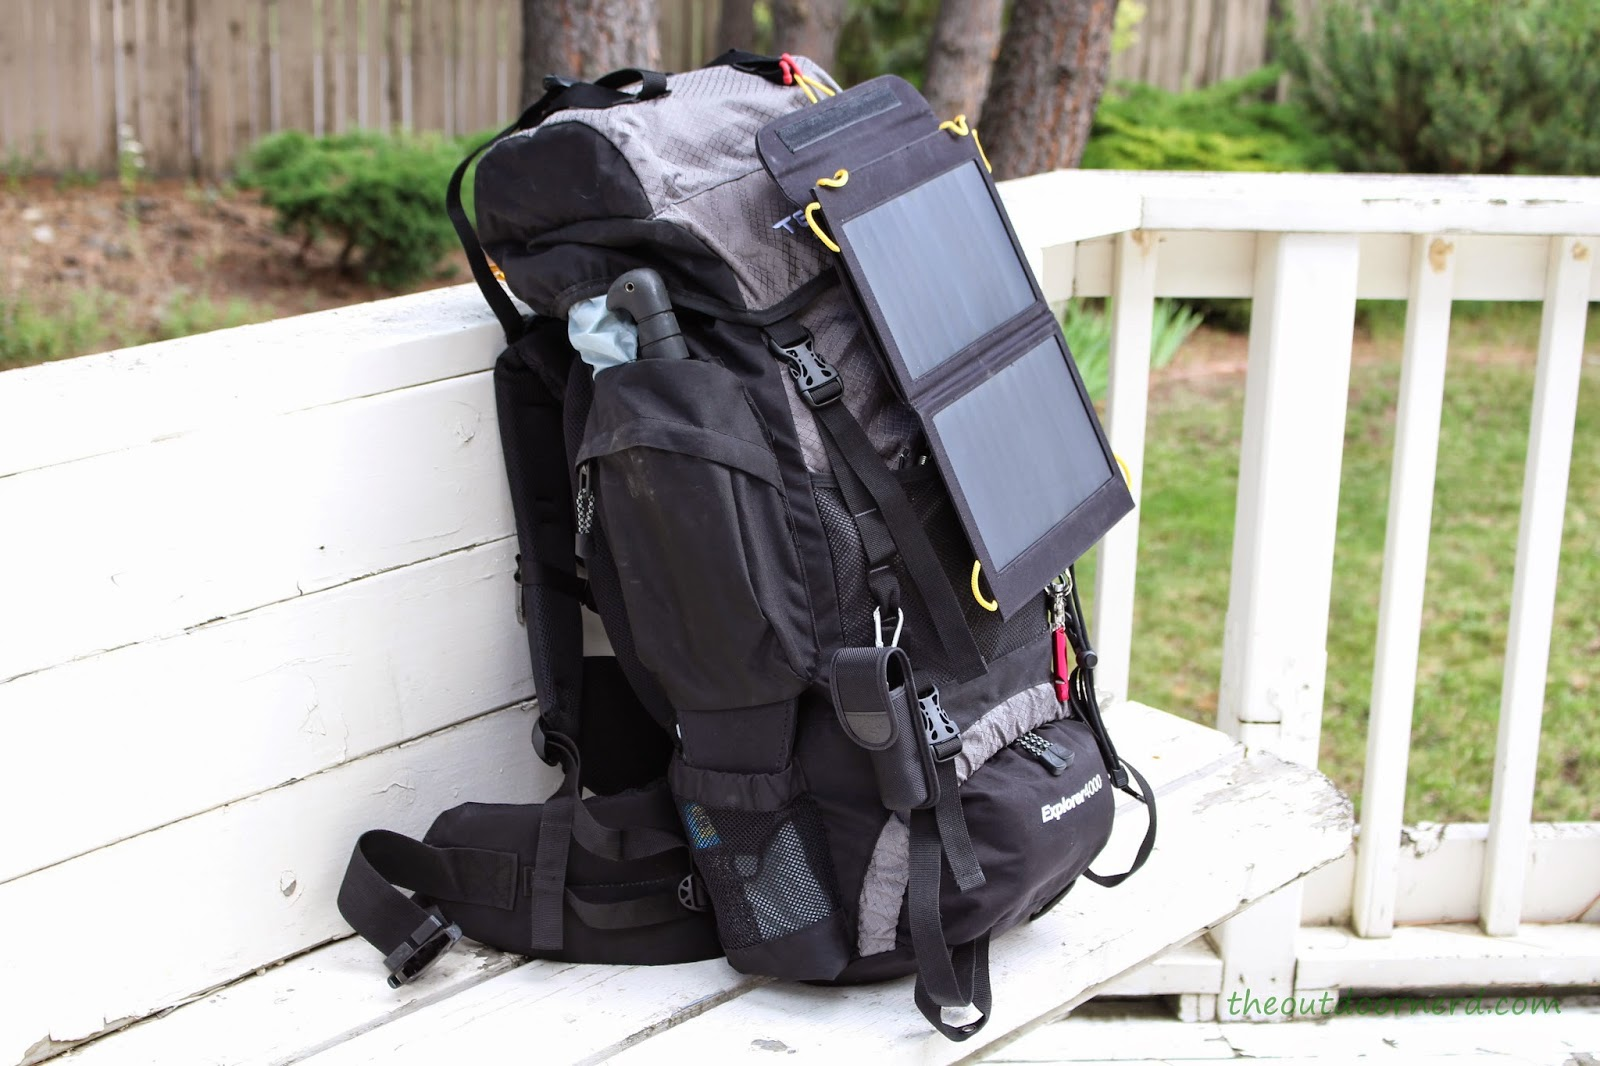 Teton Explorer 4000 Hiking Backpack With Solar Panel: Side View